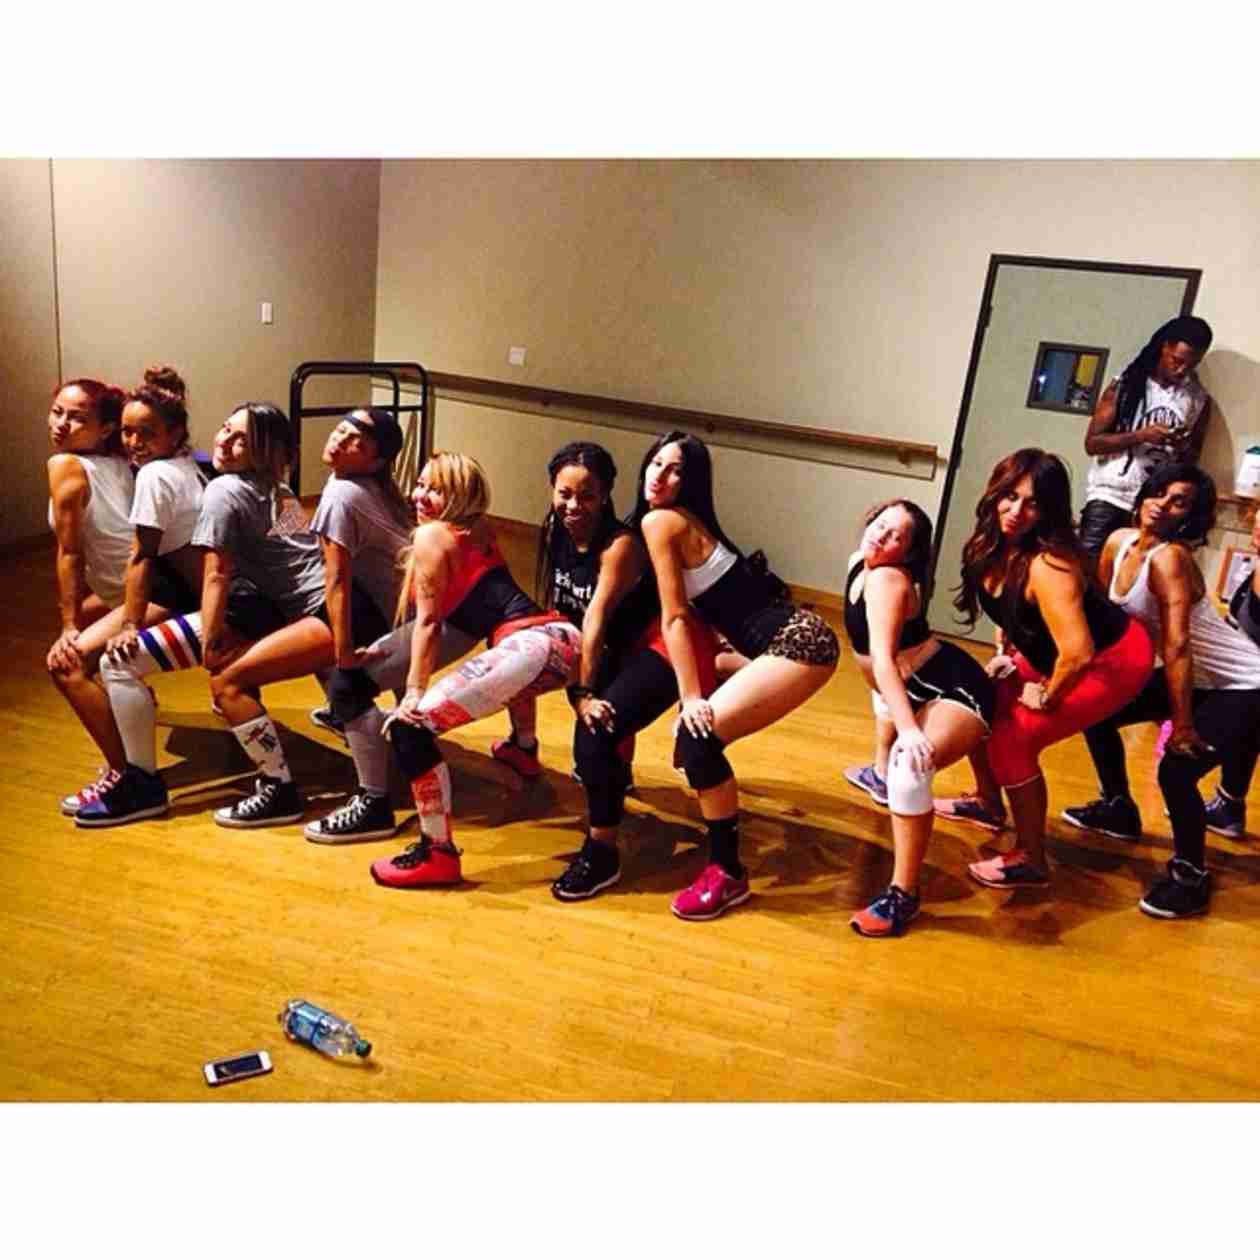 Tiny Harris and Pals Christina Milian and Karrueche Tran Create a Twerk Team! (PHOTOS)